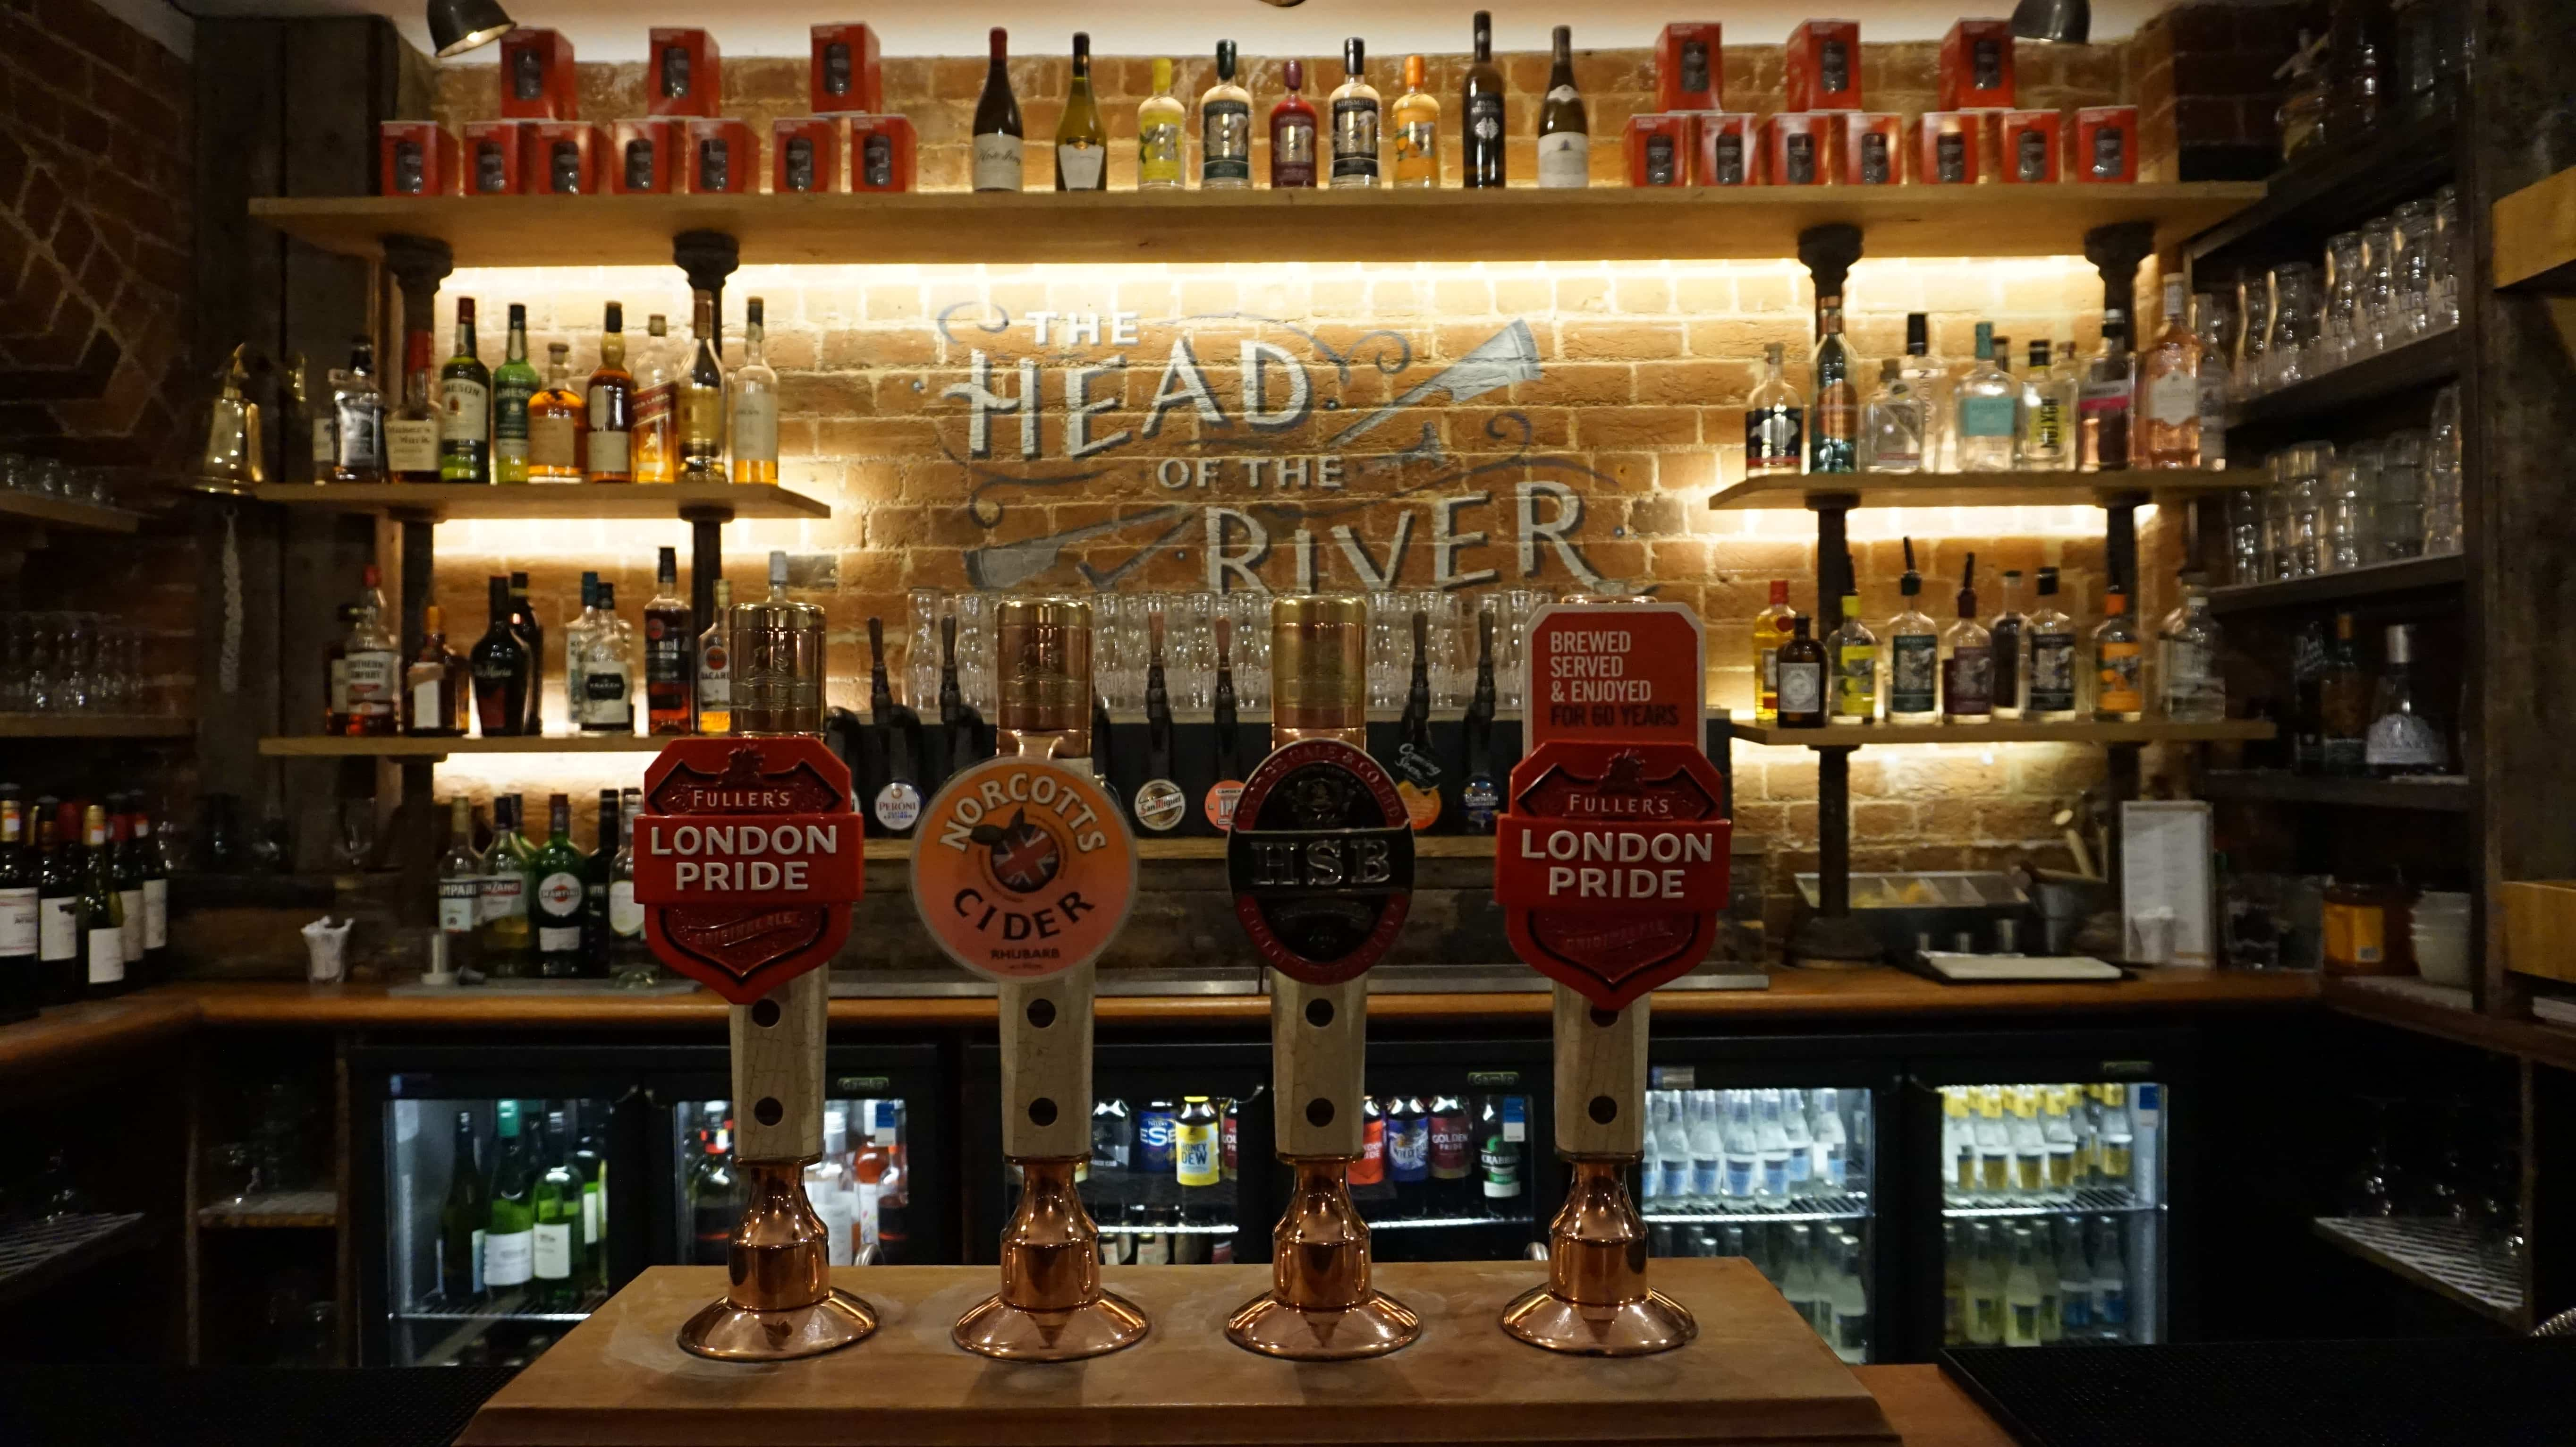 Bar at the Head of the River Oxford